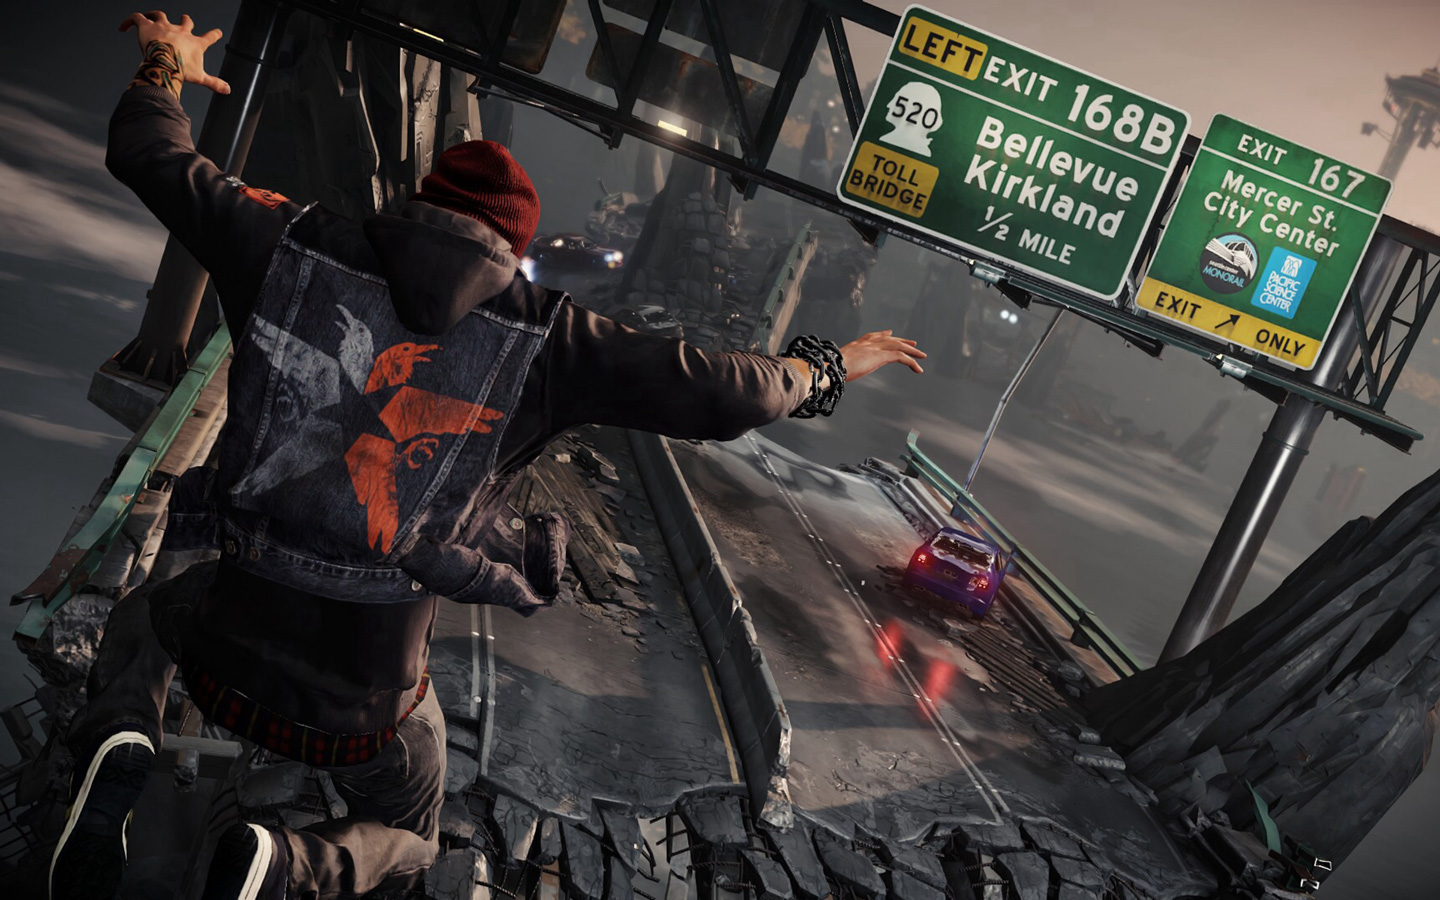 Free Infamous: Second Son Wallpaper in 1440x900